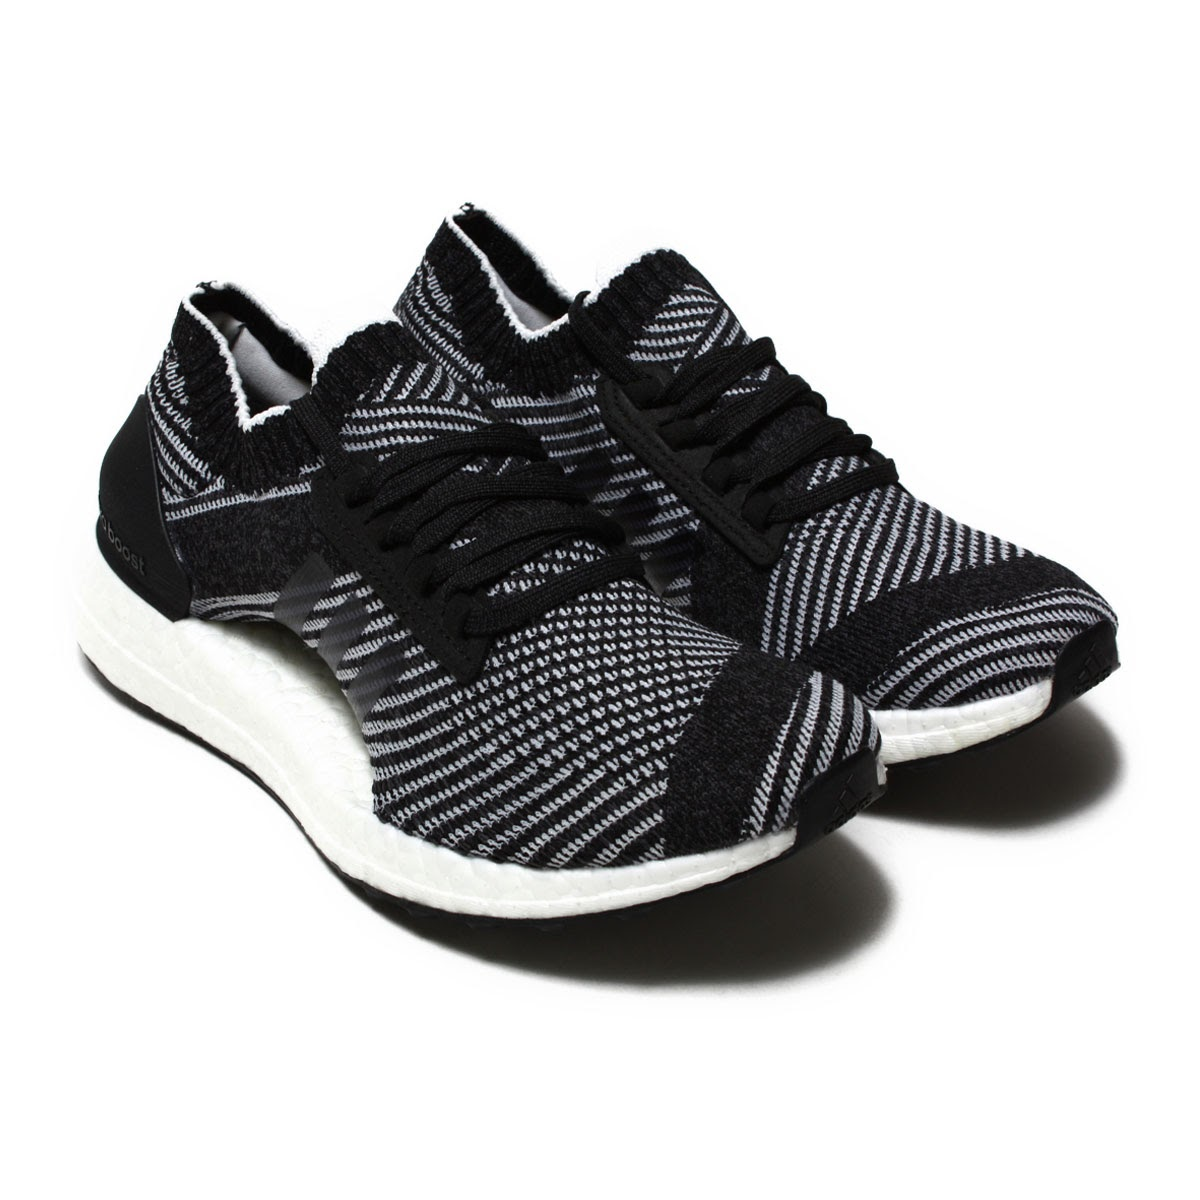 adidas Originals UltraBOOST X LTD (Adidas originals ultra boost X LTD) Core BlackGreyRunning White 18SP I